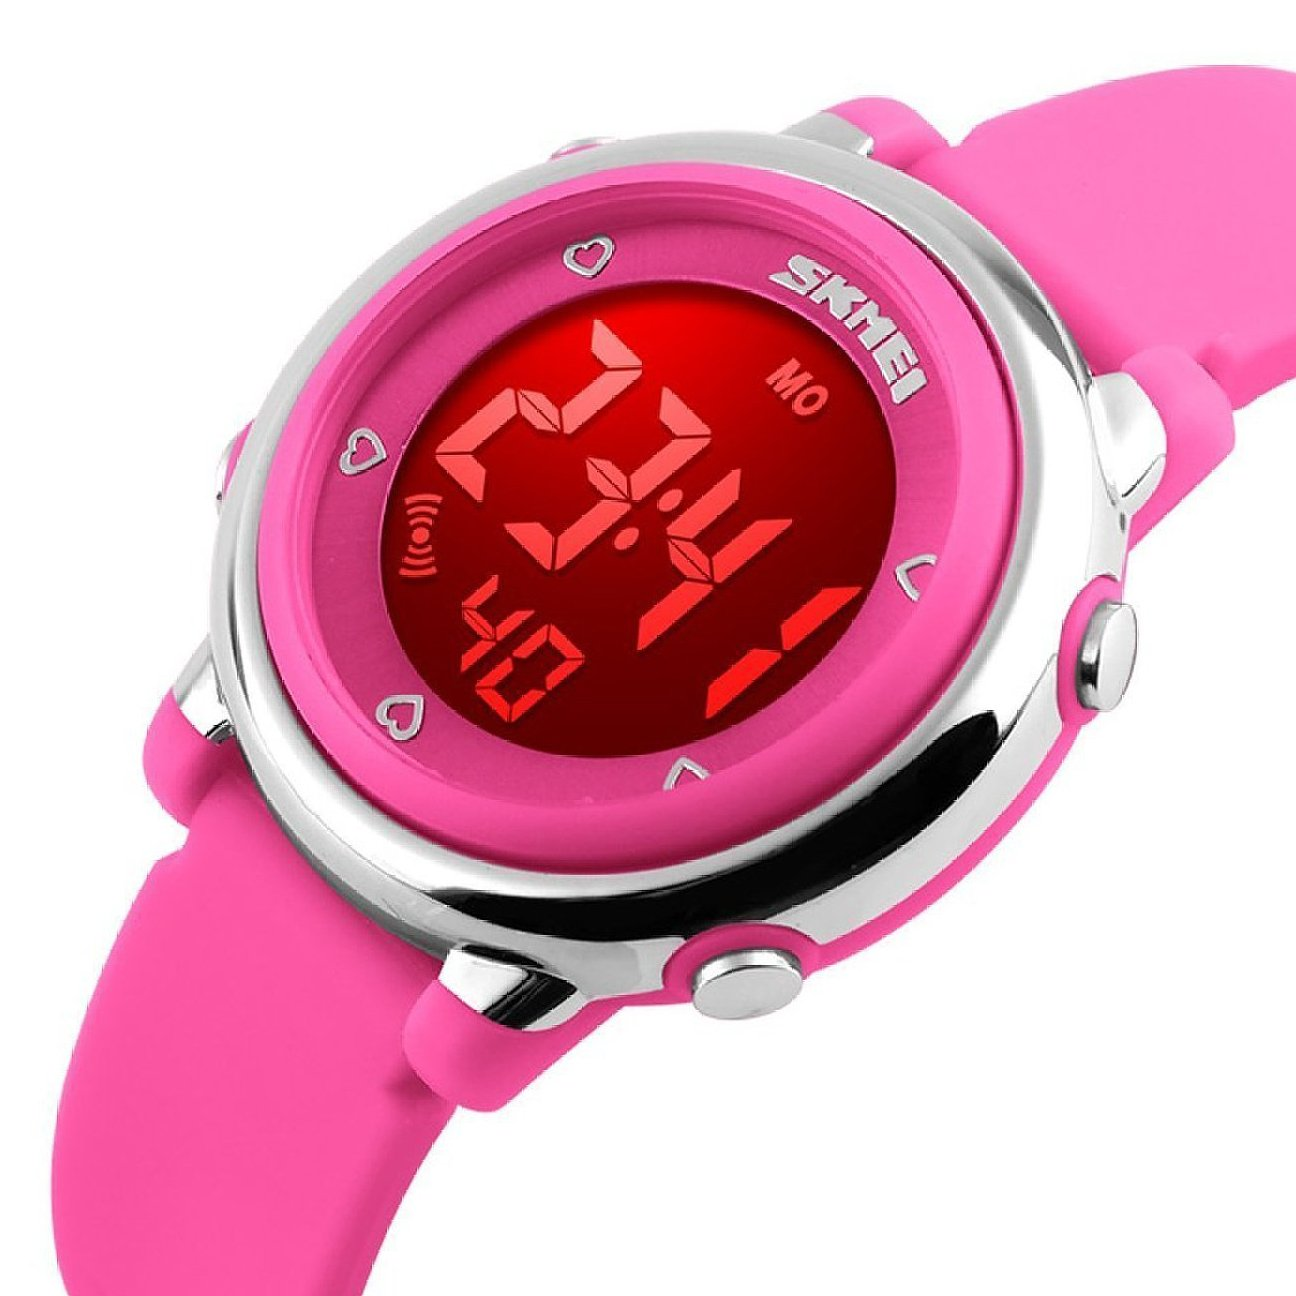 Digital Kids Watch Band with Hourly Chime, Stopwatch, Daily Alarm & Calendar, Water Resistant 30M (Pink Rose Red) by BETTERLINE